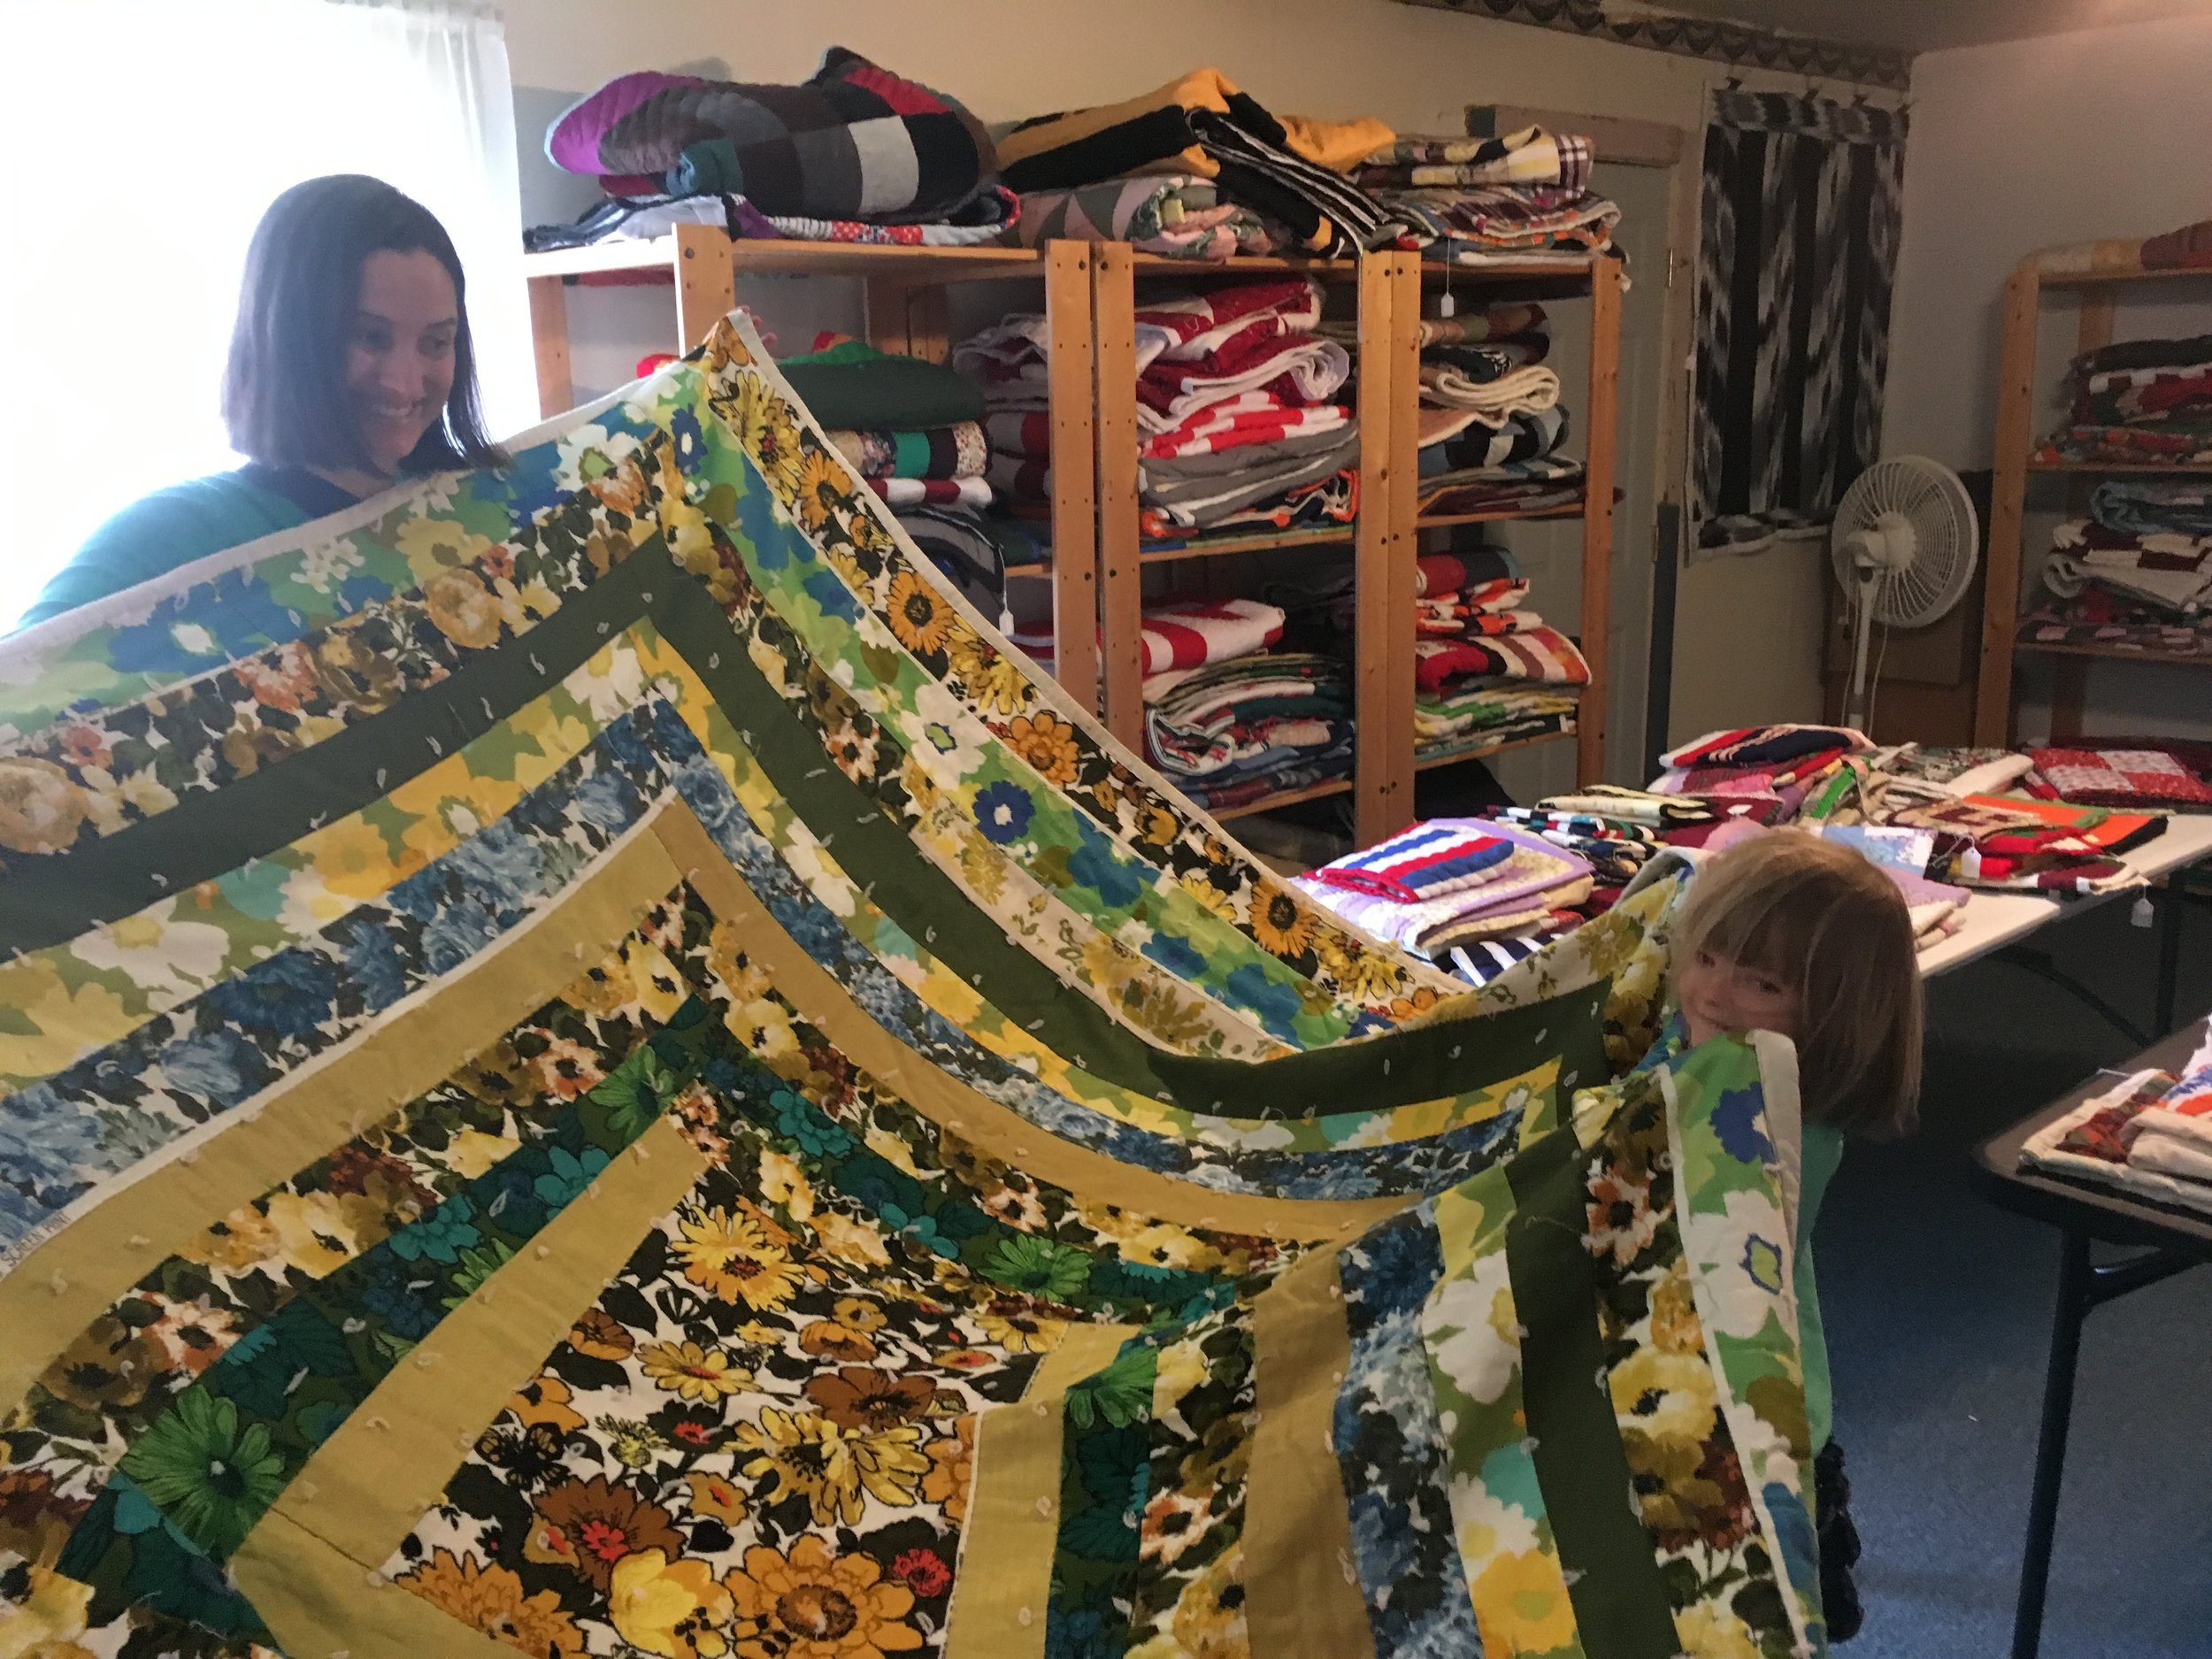 My niece wanted to be wrapped up in every quilt in the shop. Me too.